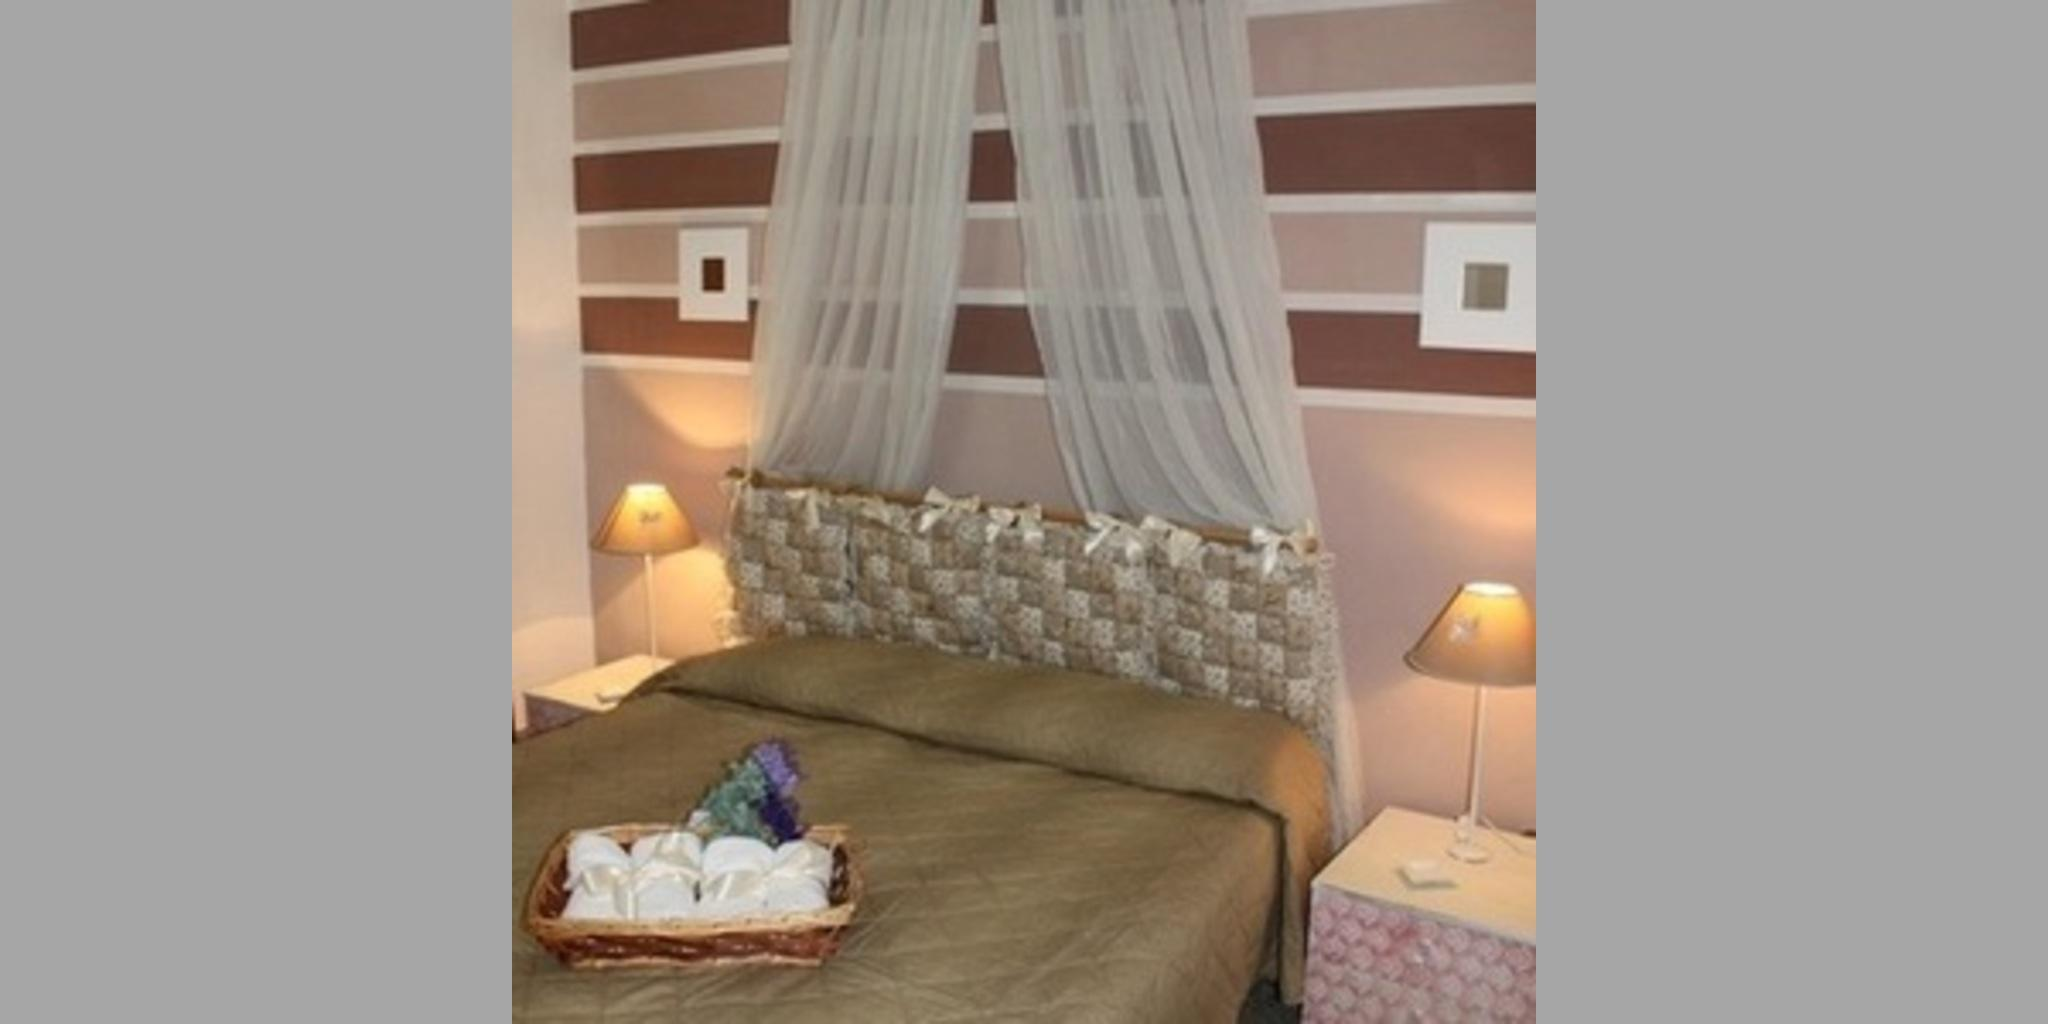 Bed & Breakfast Agrigento - San Girolamo